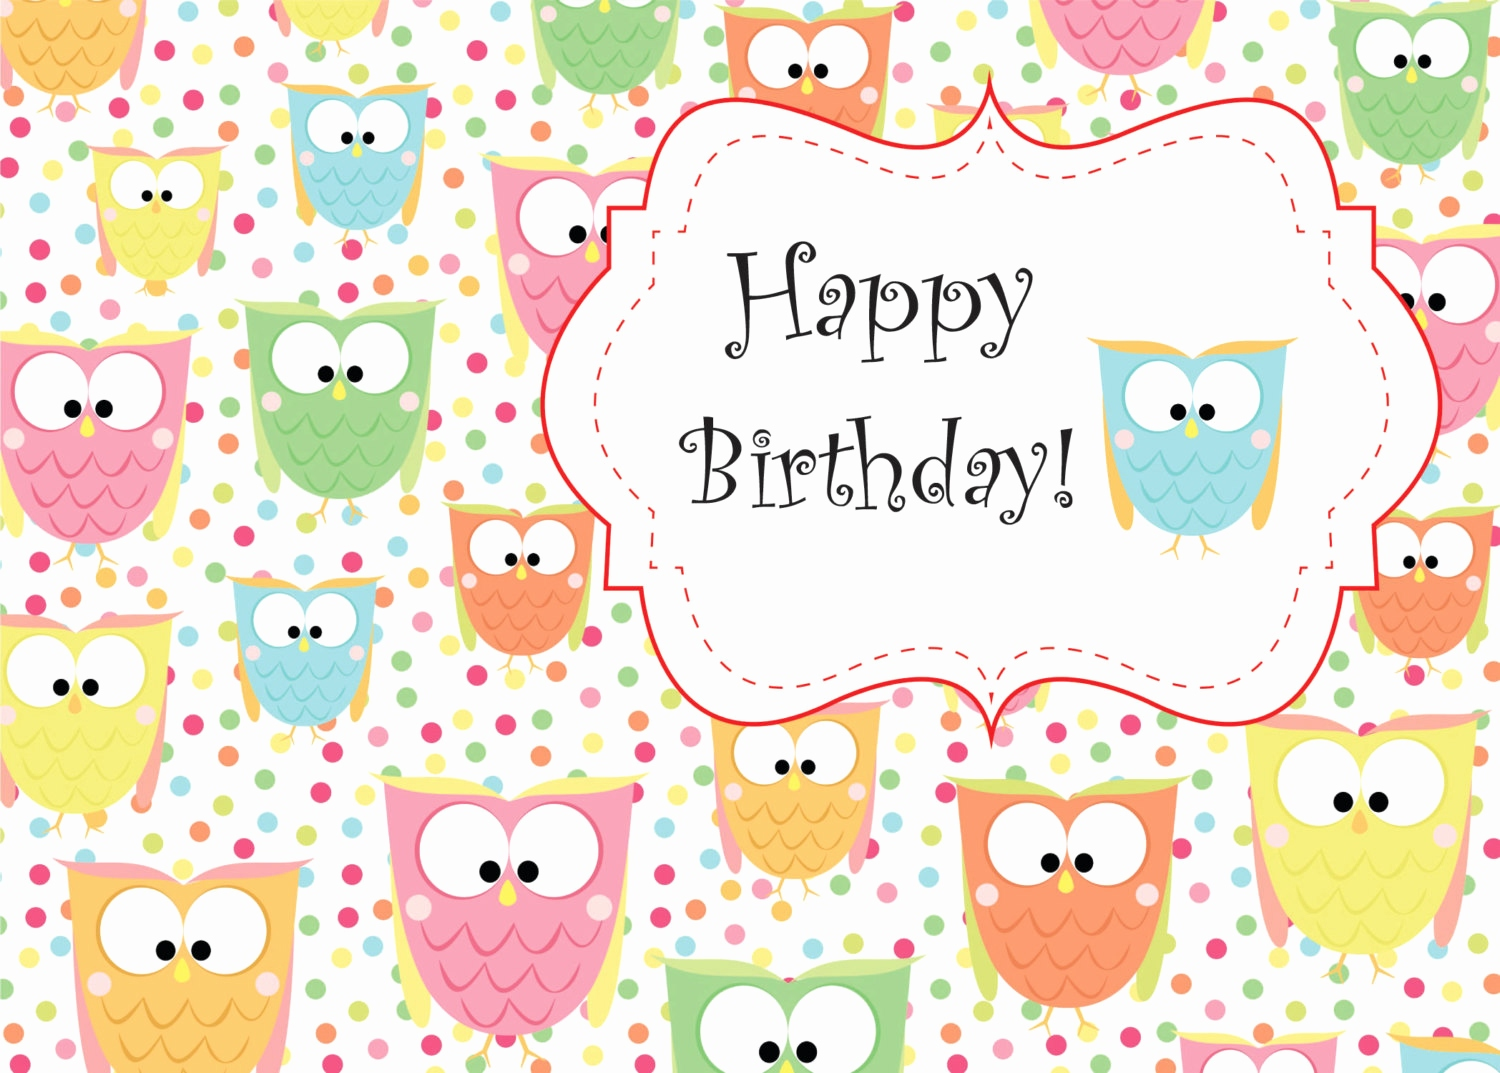 happy birthday card in spanish to print ; printable-birthday-cards-in-spanish-elegant-template-free-birthday-cards-to-design-and-print-also-free-of-printable-birthday-cards-in-spanish